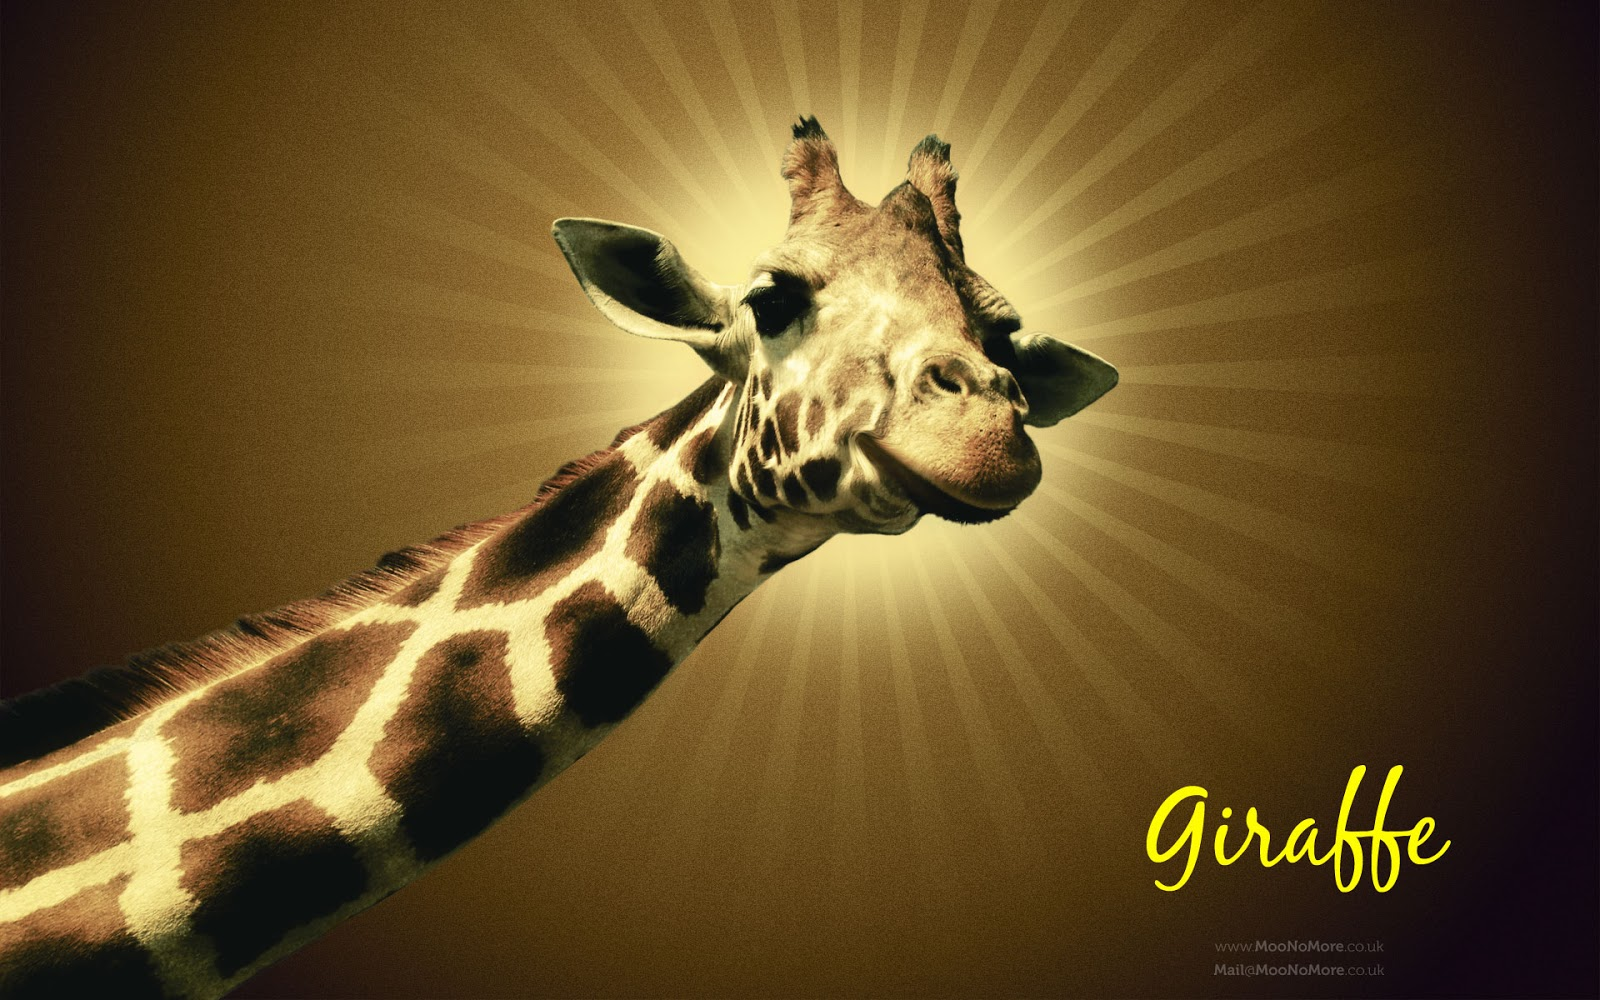 giraffe wallpapers hd pictures - photo #11